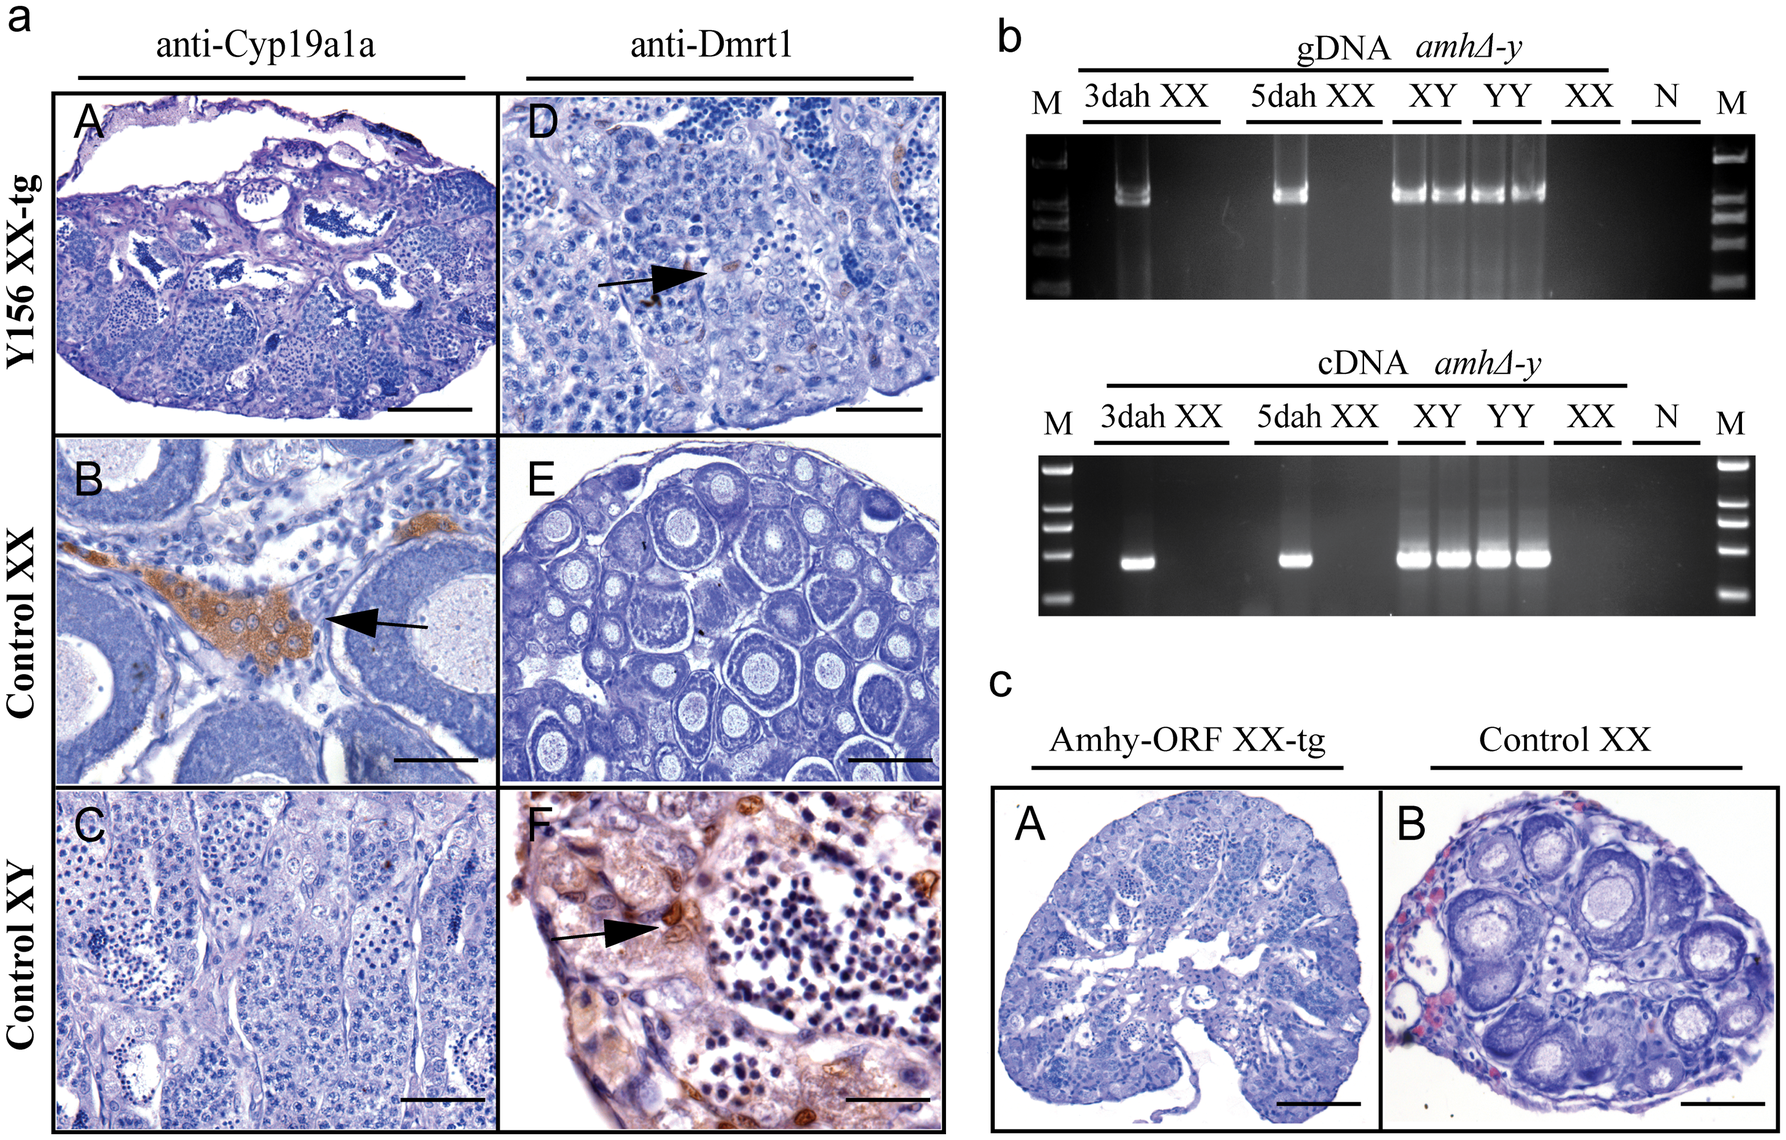 Transgenic overexpression of Y156 fosmid and Amhy ORF resulted in sex reversal in F<sub>0</sub> XX fish.